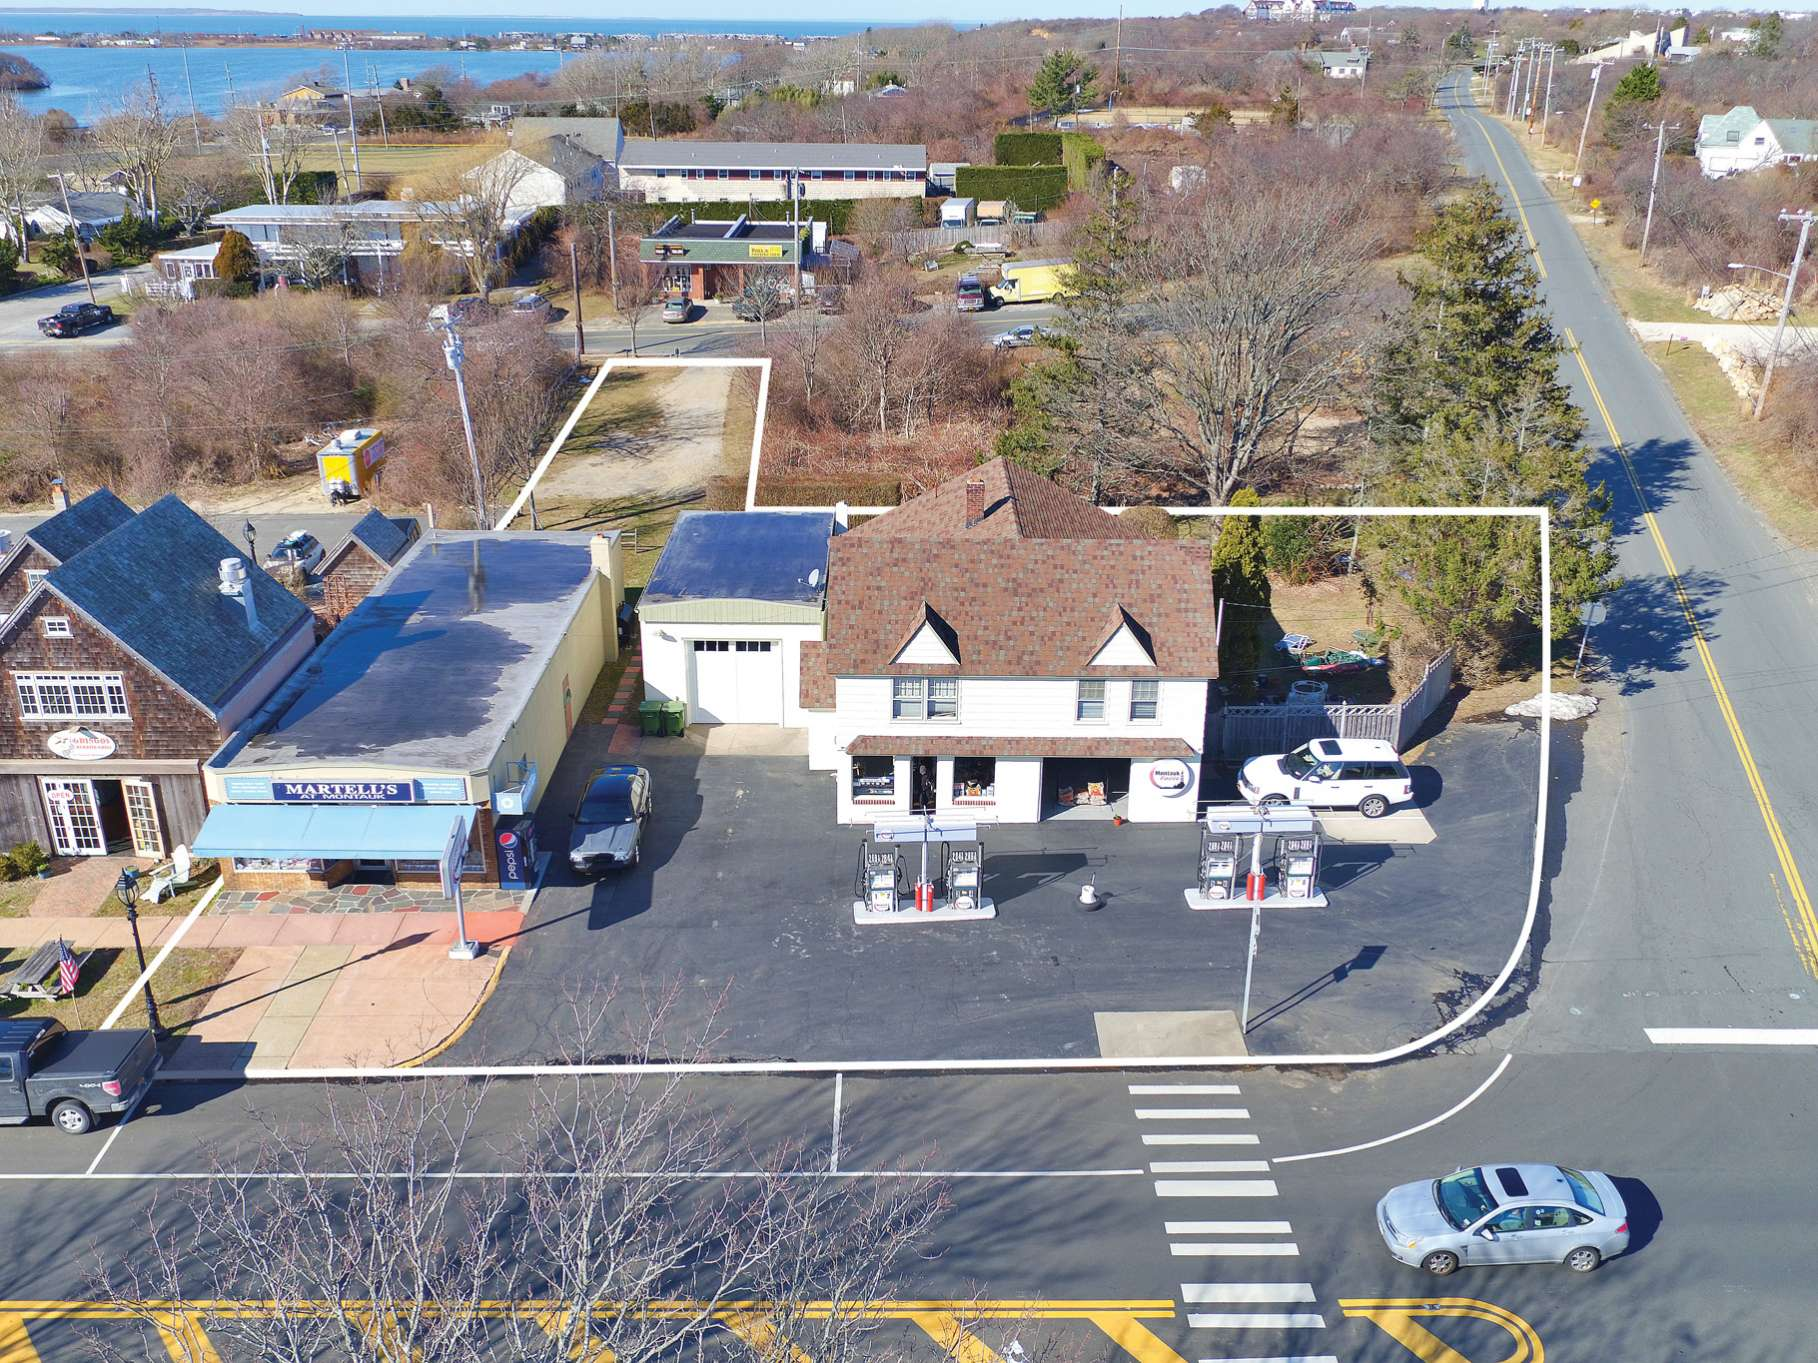 Commercial for Sale at Main Street Montauk Prime Commercial Real Estate 813 Main Street, 809 Main Street, 90 S Euclid Avenue, Montauk, New York